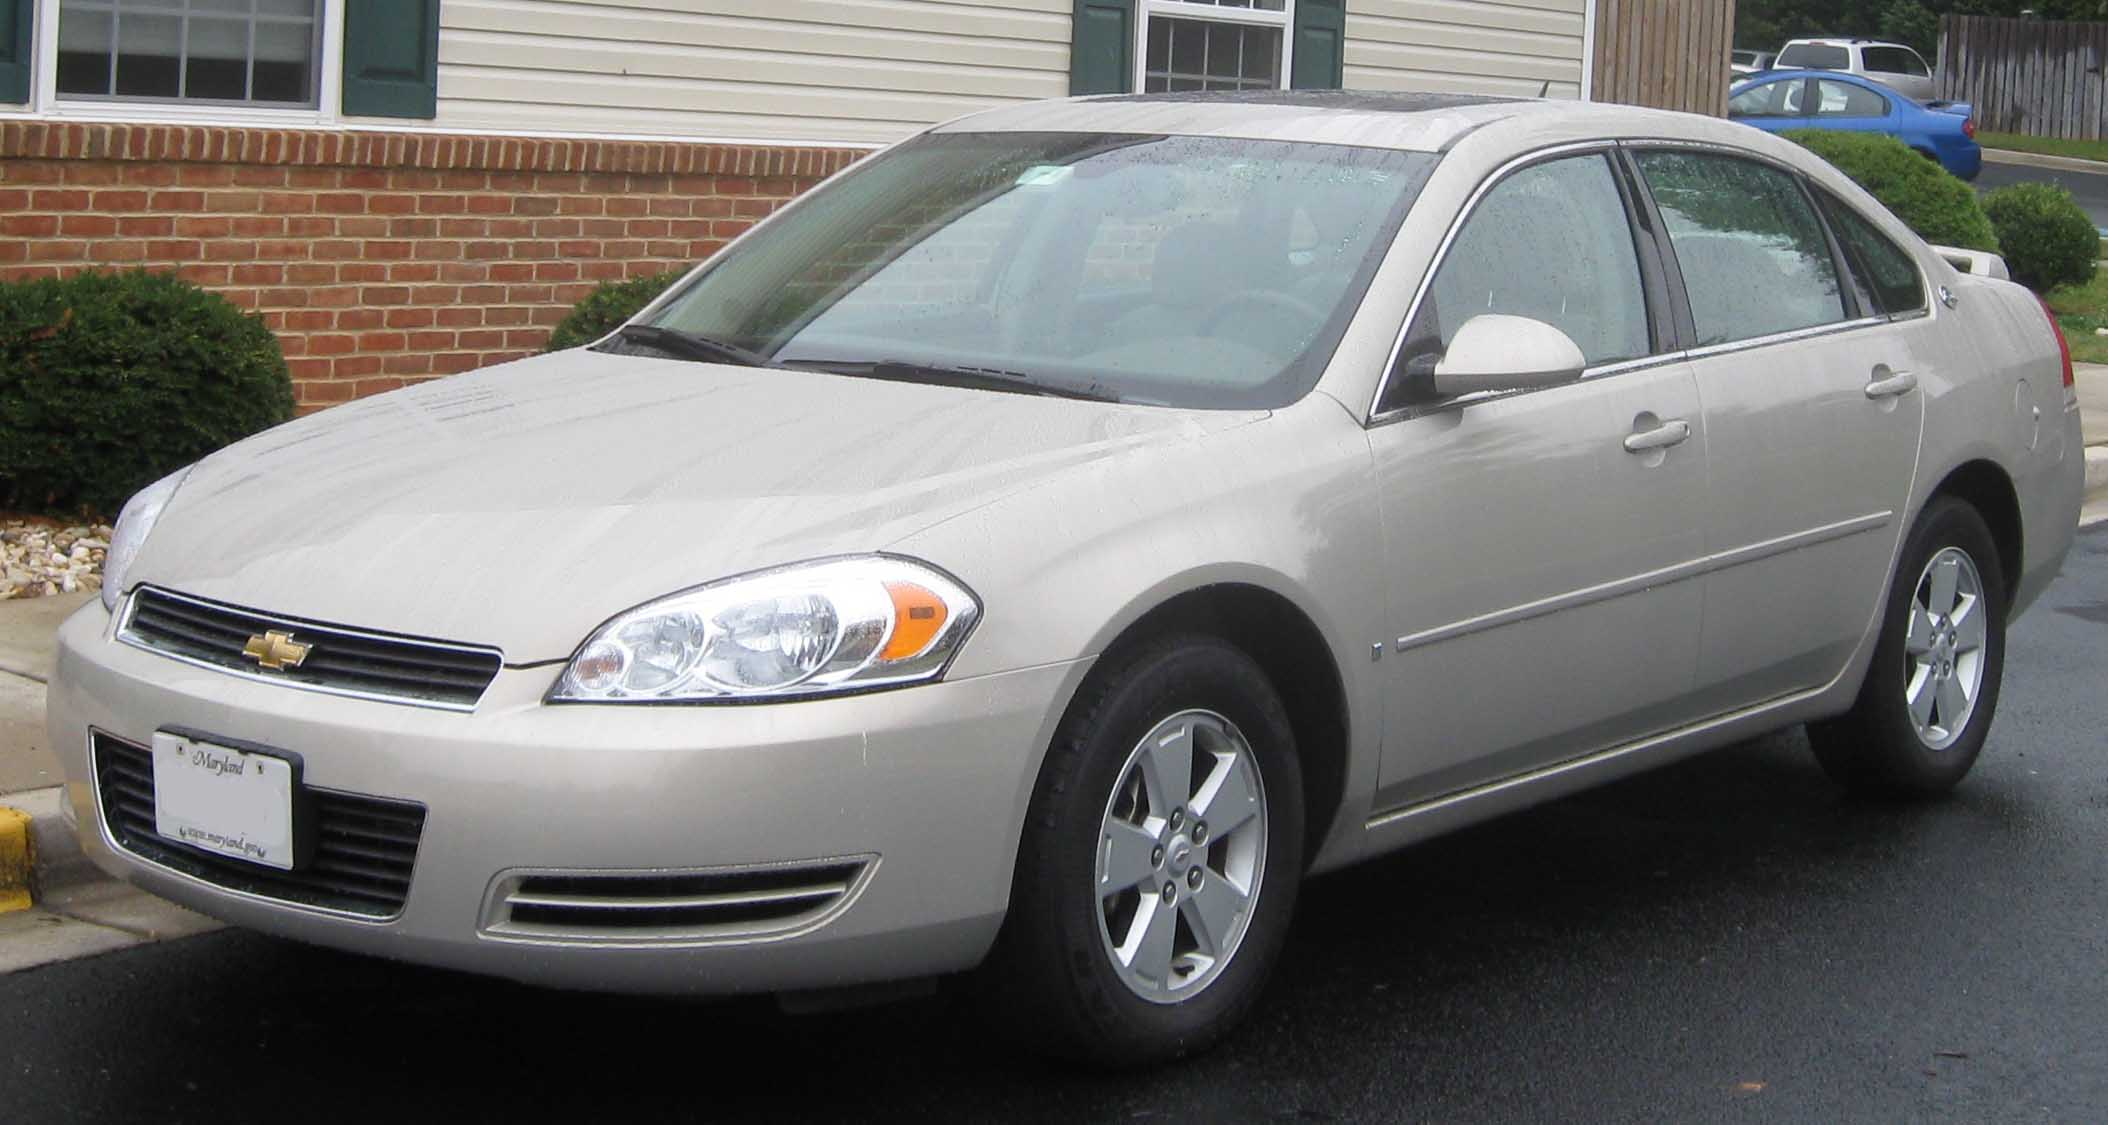 2008 Chevy Impala Silver Www Imgkid Com The Image Kid